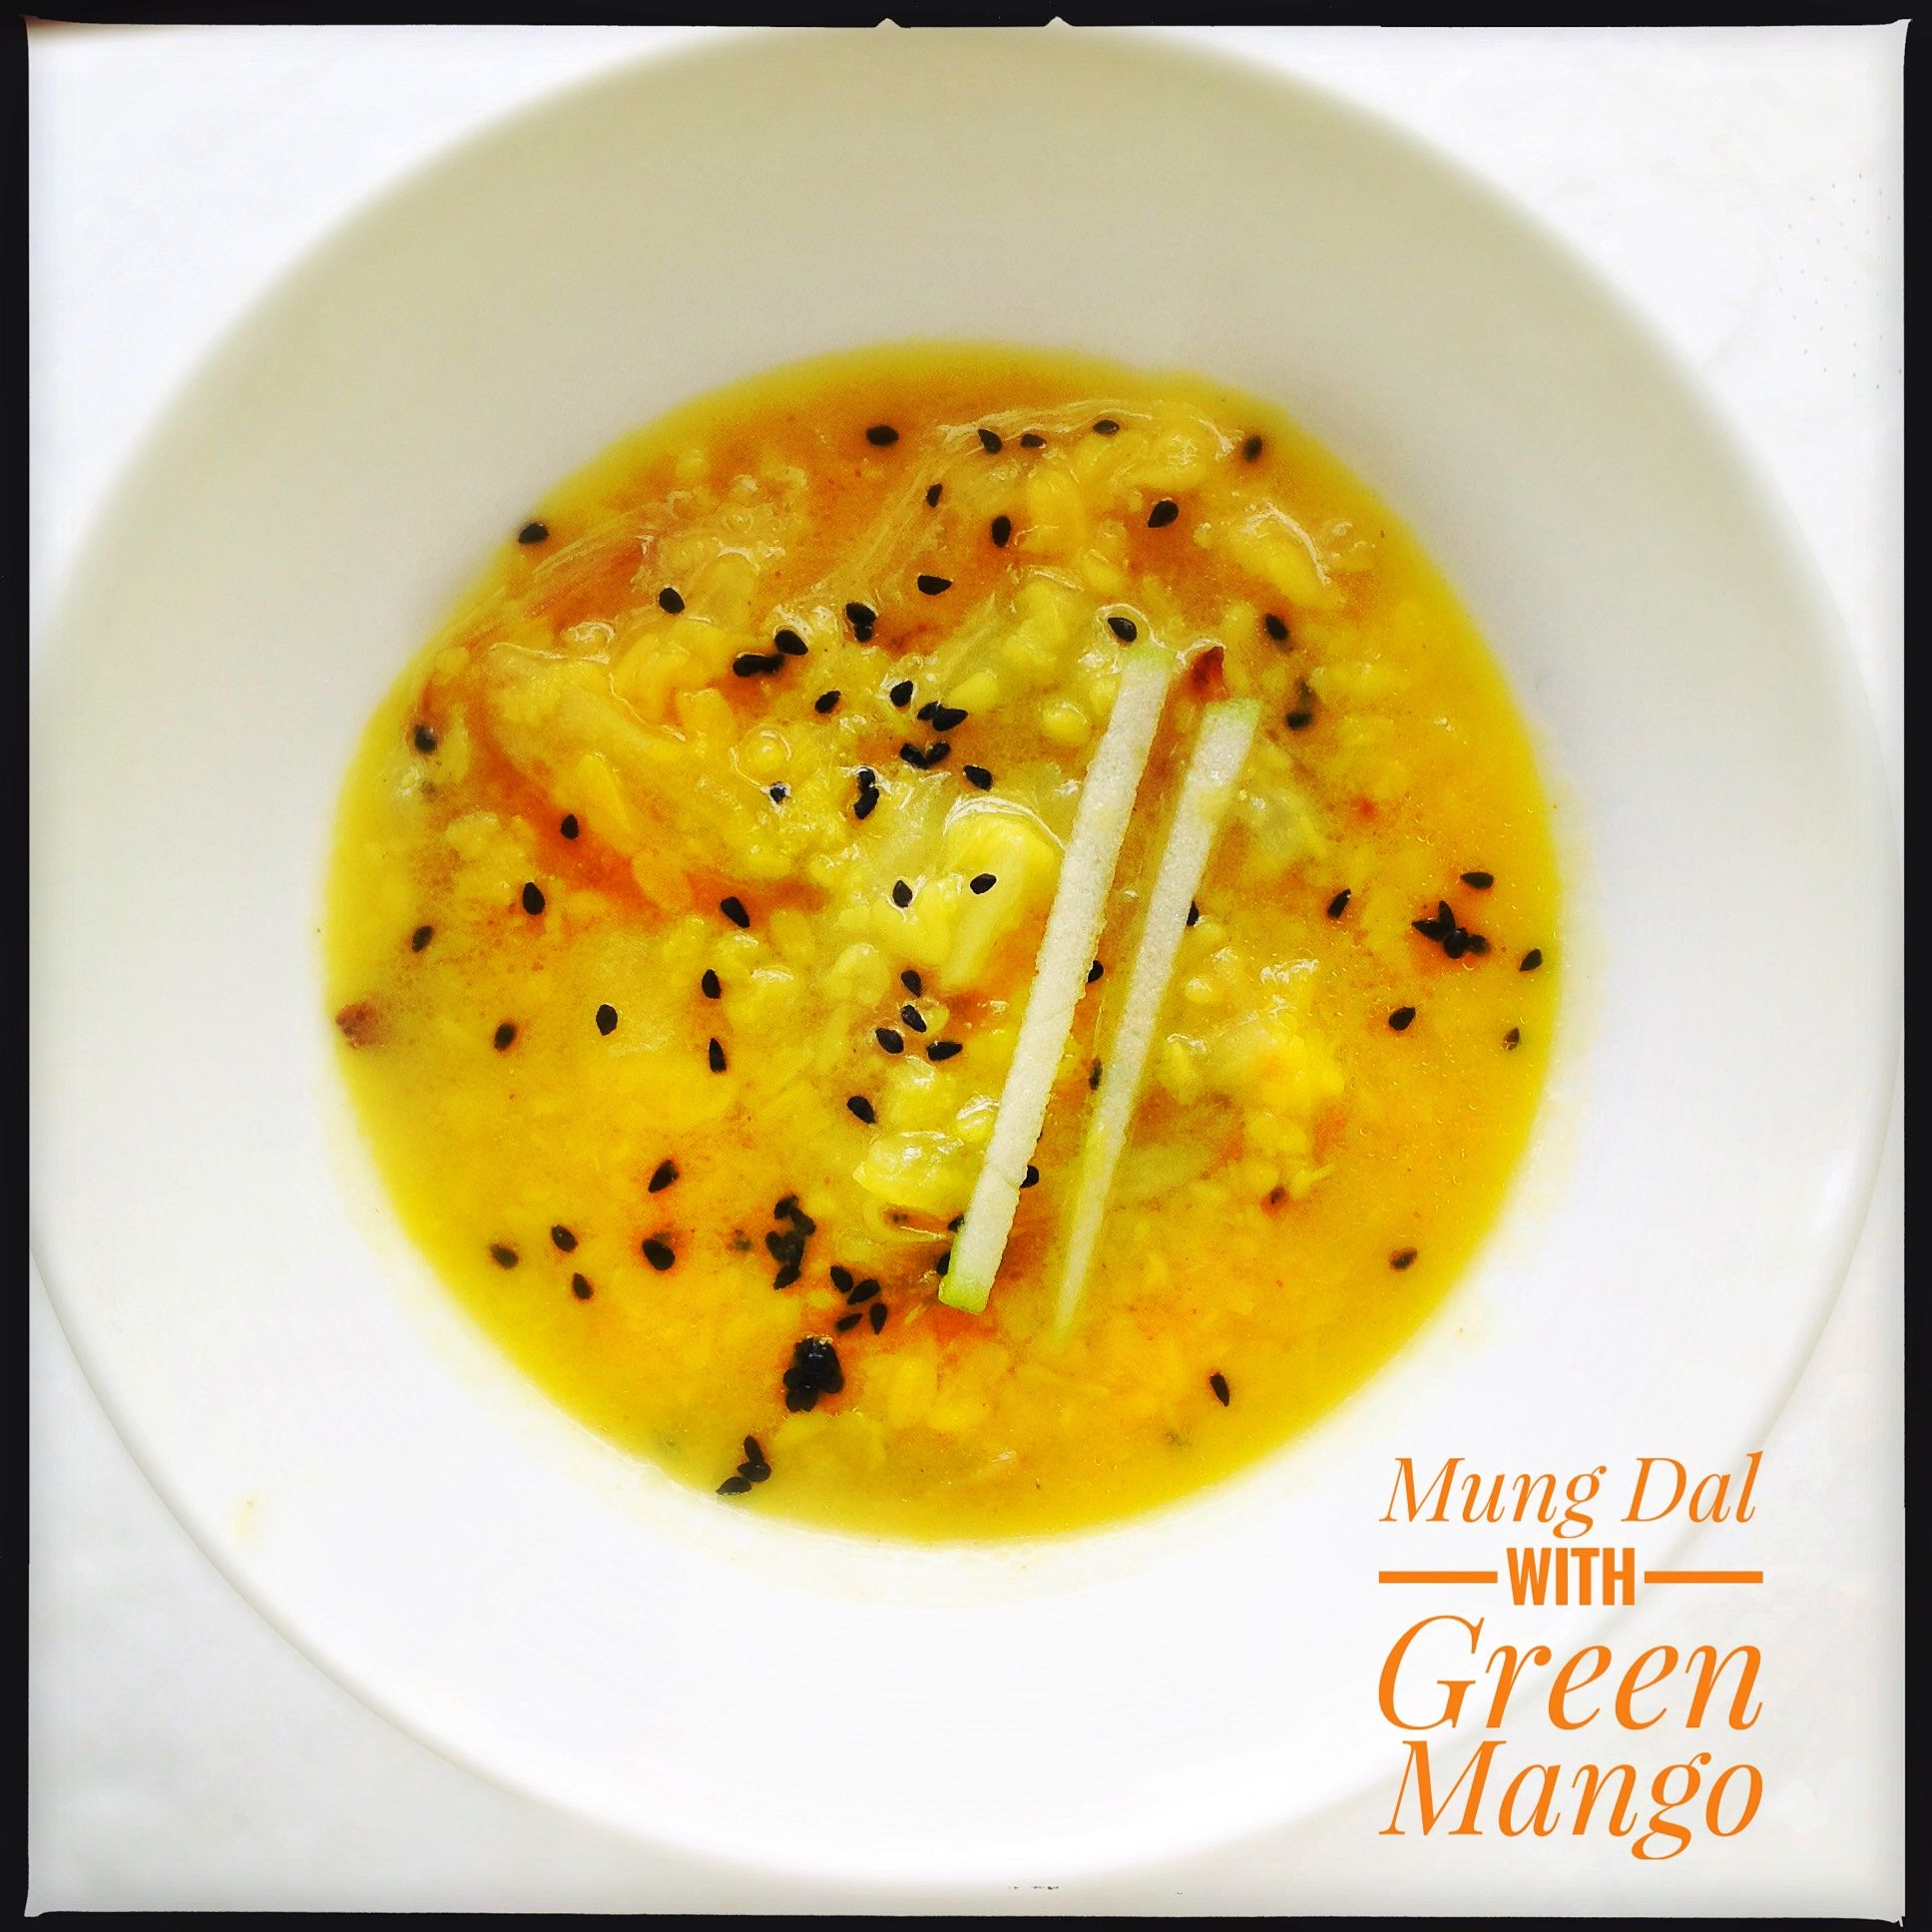 Mung dal with green mango late summer indian food recipes and mung dal with green mango indian curry indian food recipes forumfinder Choice Image